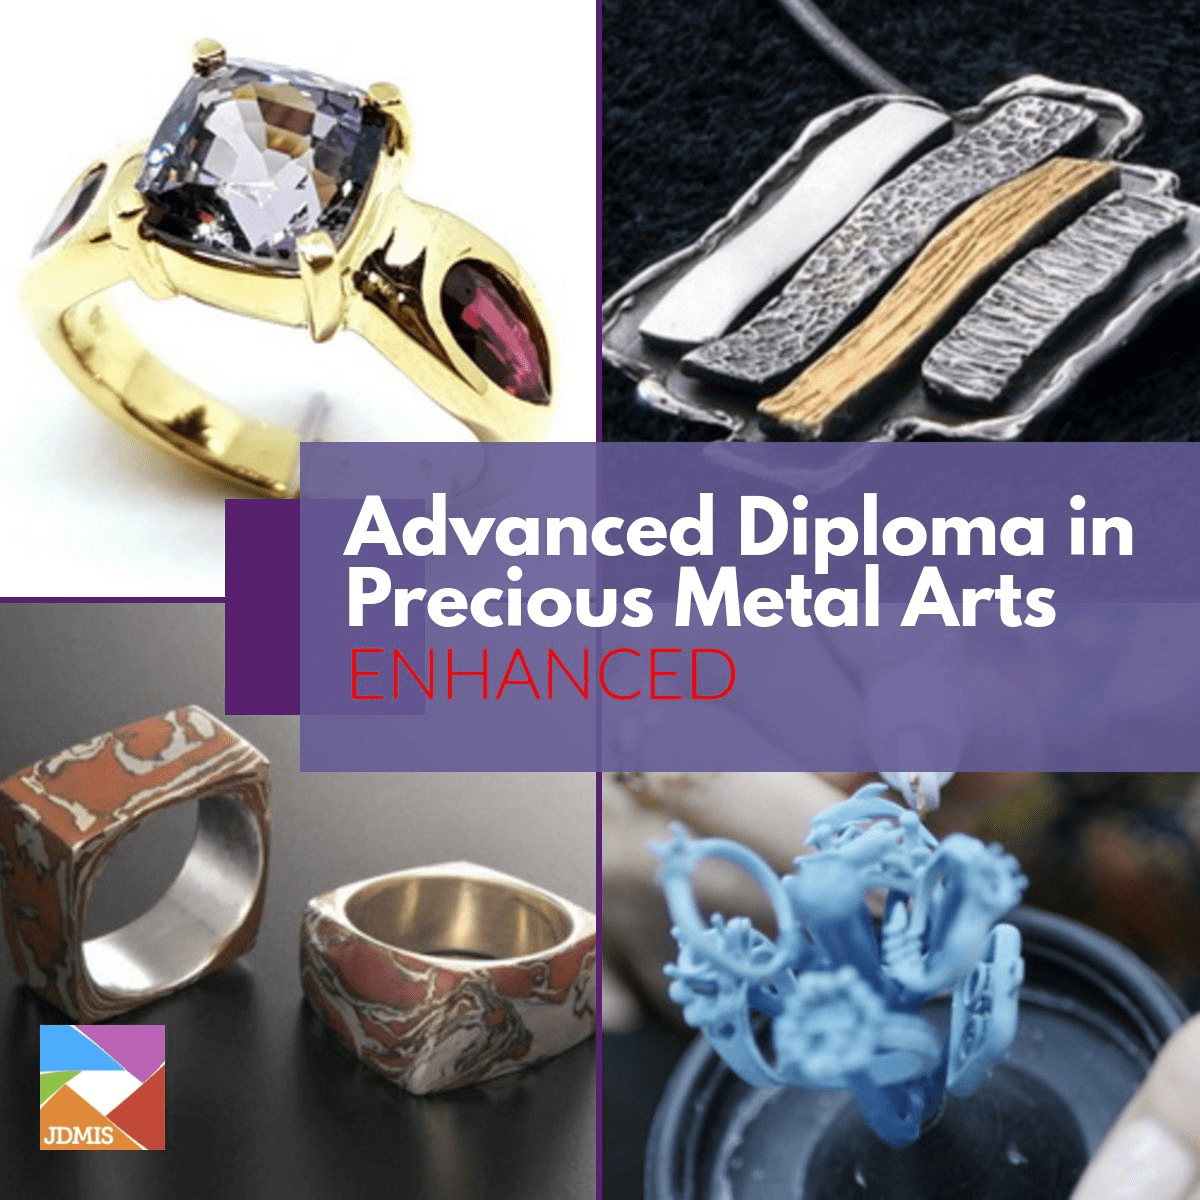 Jewellery artists rely on their taste, style and eye for detail – but often do not have the tools or understanding needed to execute their best ideas. Working with...